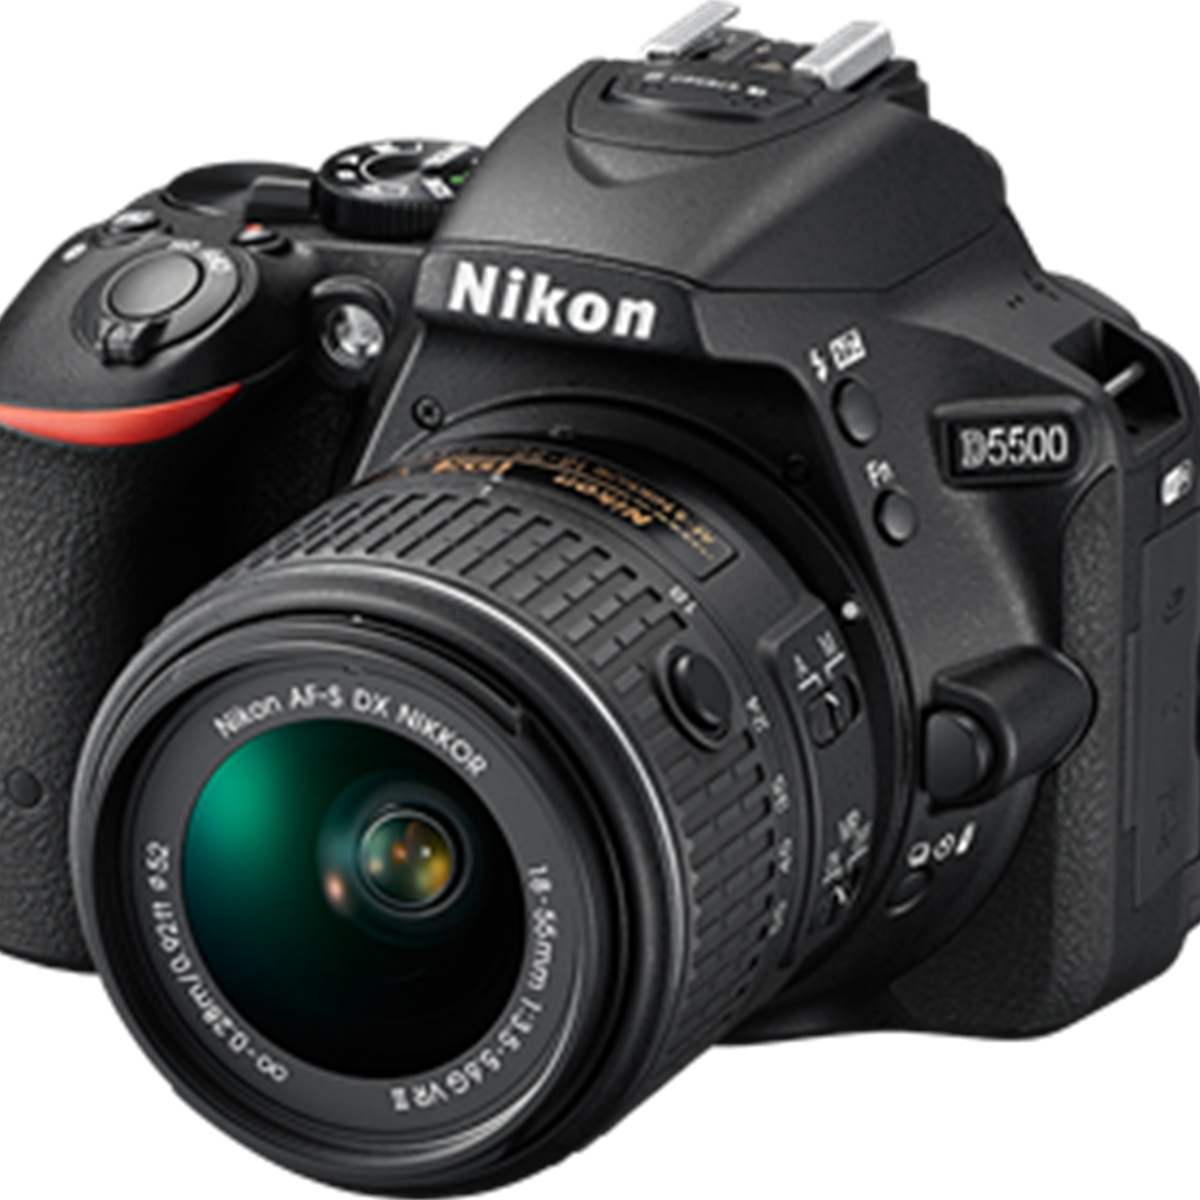 Nikon D5300 and D5500 firmware 1 01 adds support for AF-P DX 18-55mm